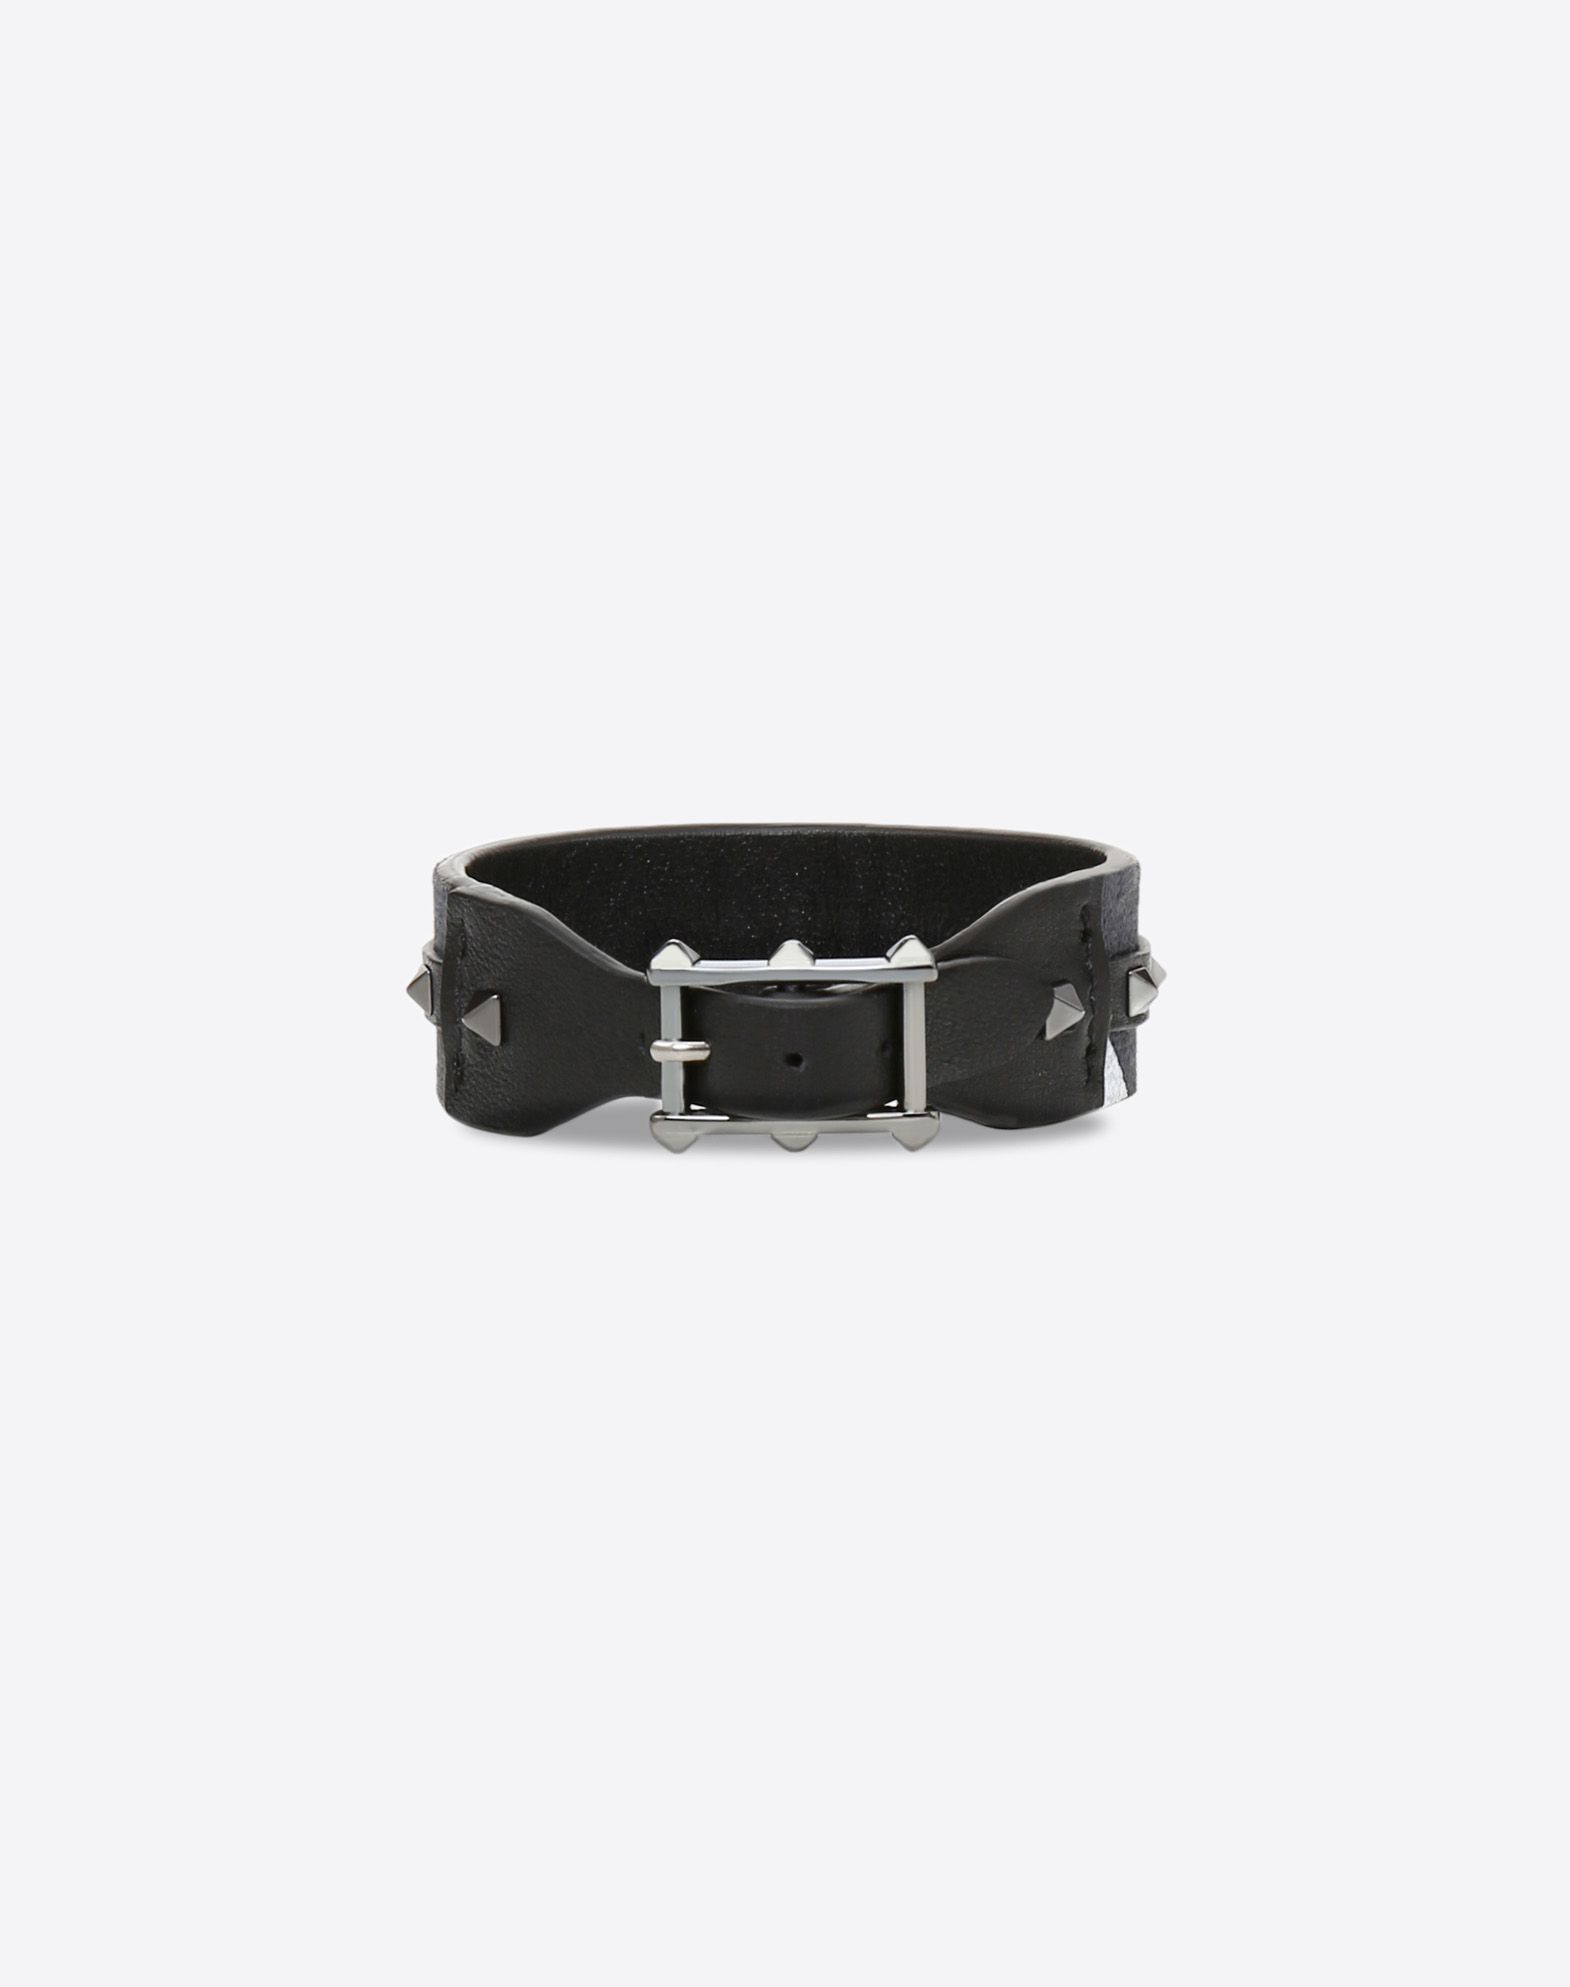 VALENTINO Canvas Buckle Strap material: leather Studs  50212435lf